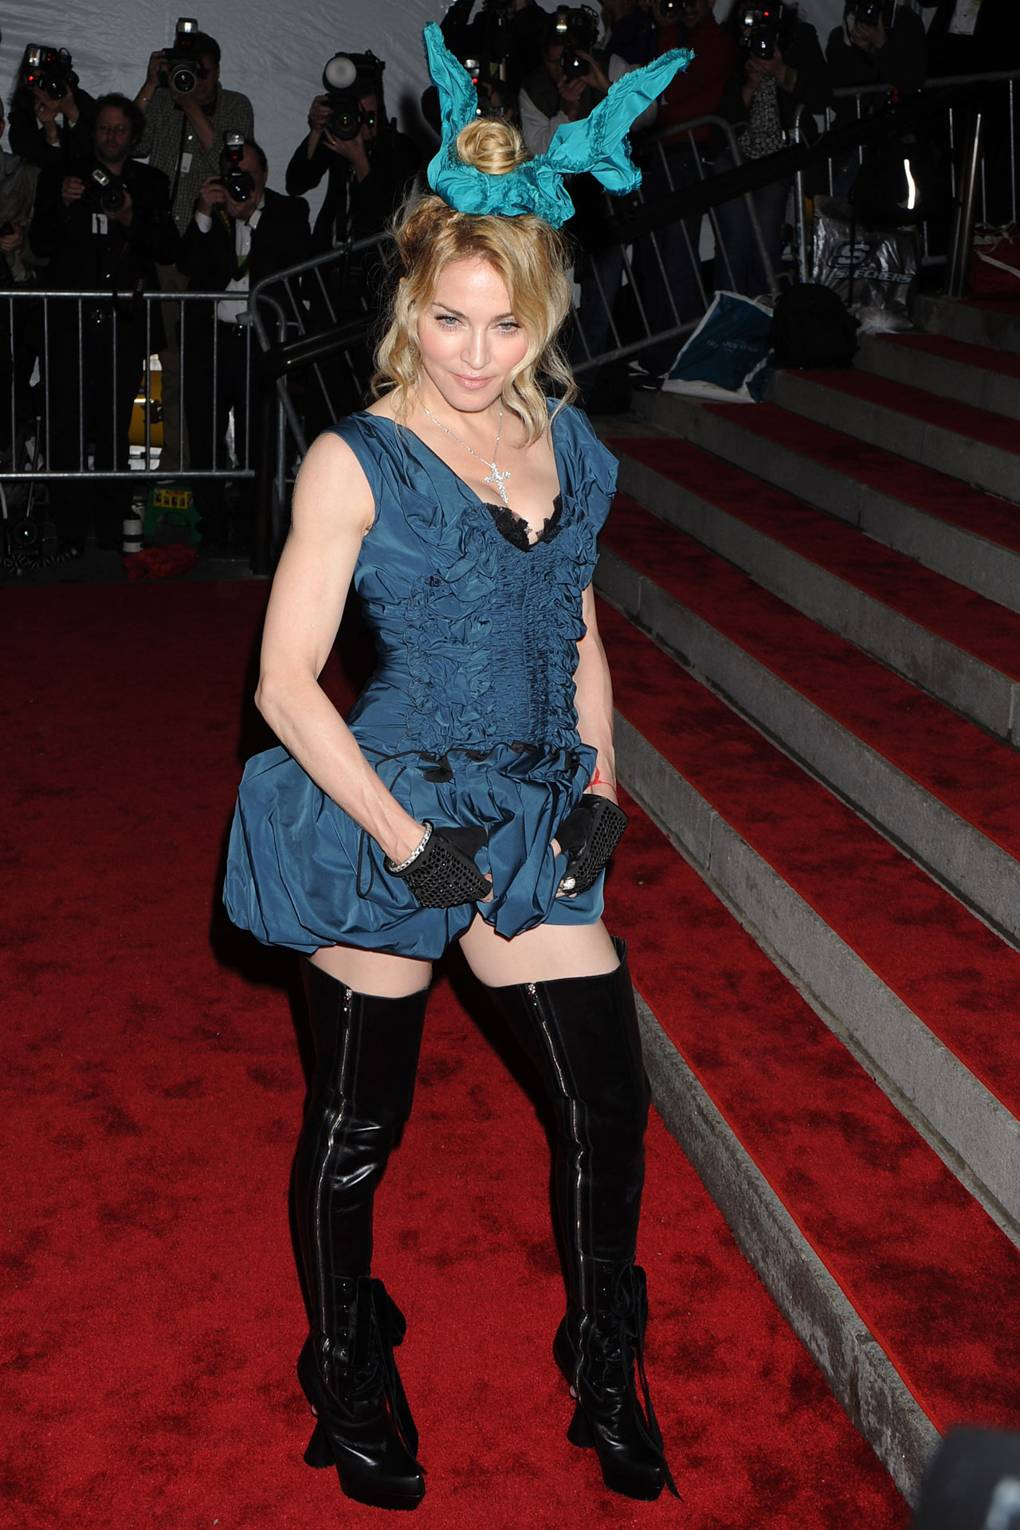 Crazy Celebrity Outfits We'll Never Forget pictures